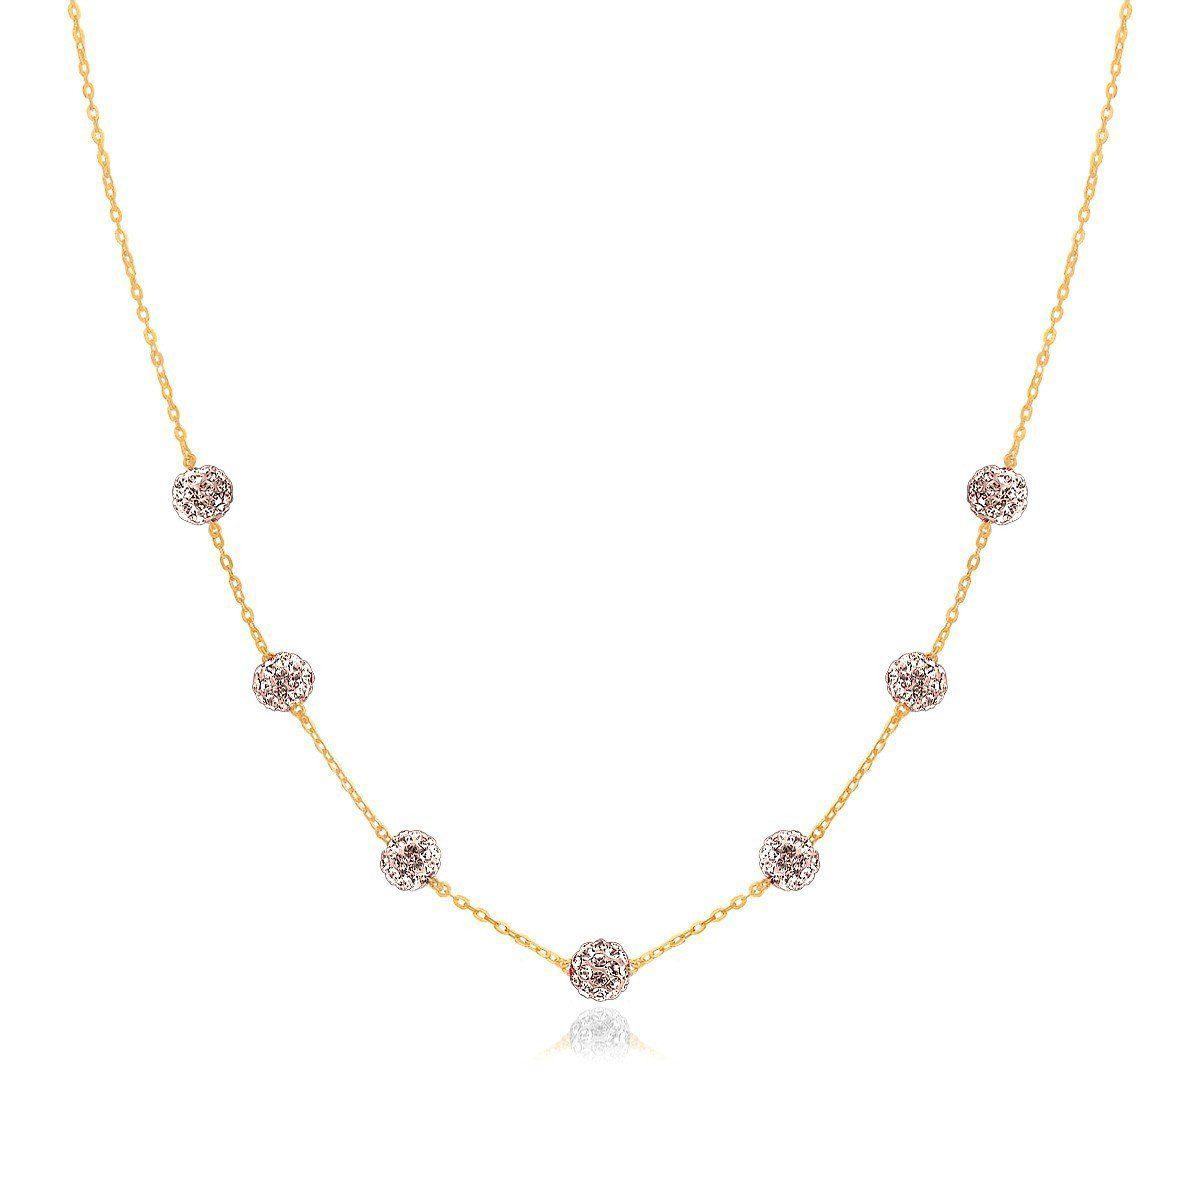 K gold necklace with crystal embellished sphere stations